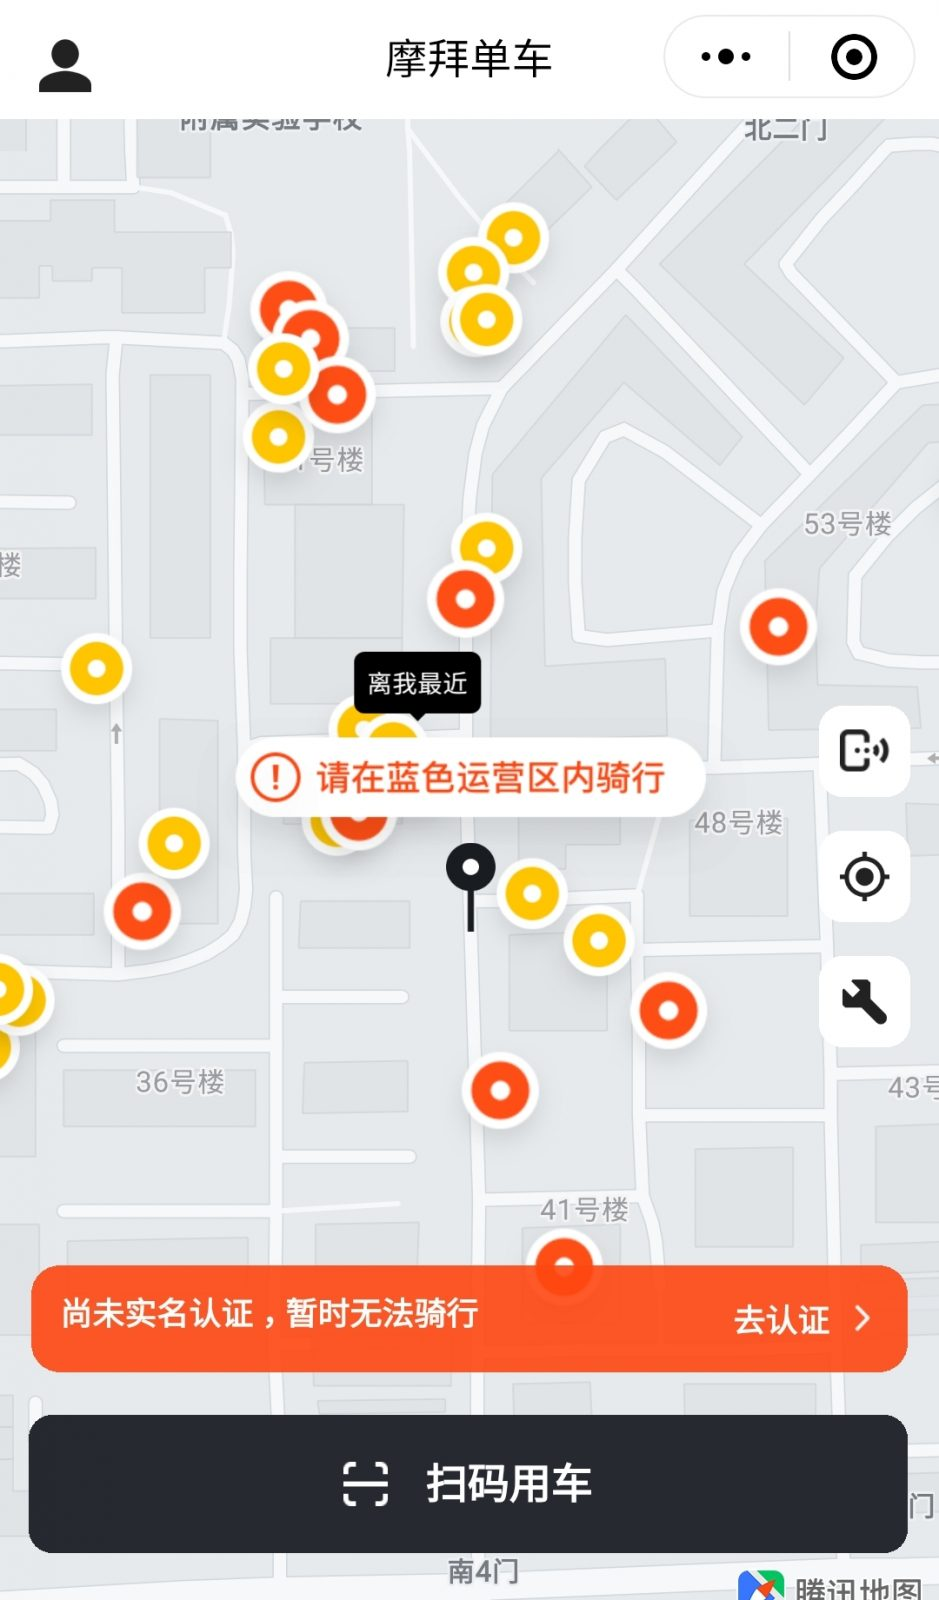 Mobike android ios wechat 摩拜单车 按掉 苹果 微信